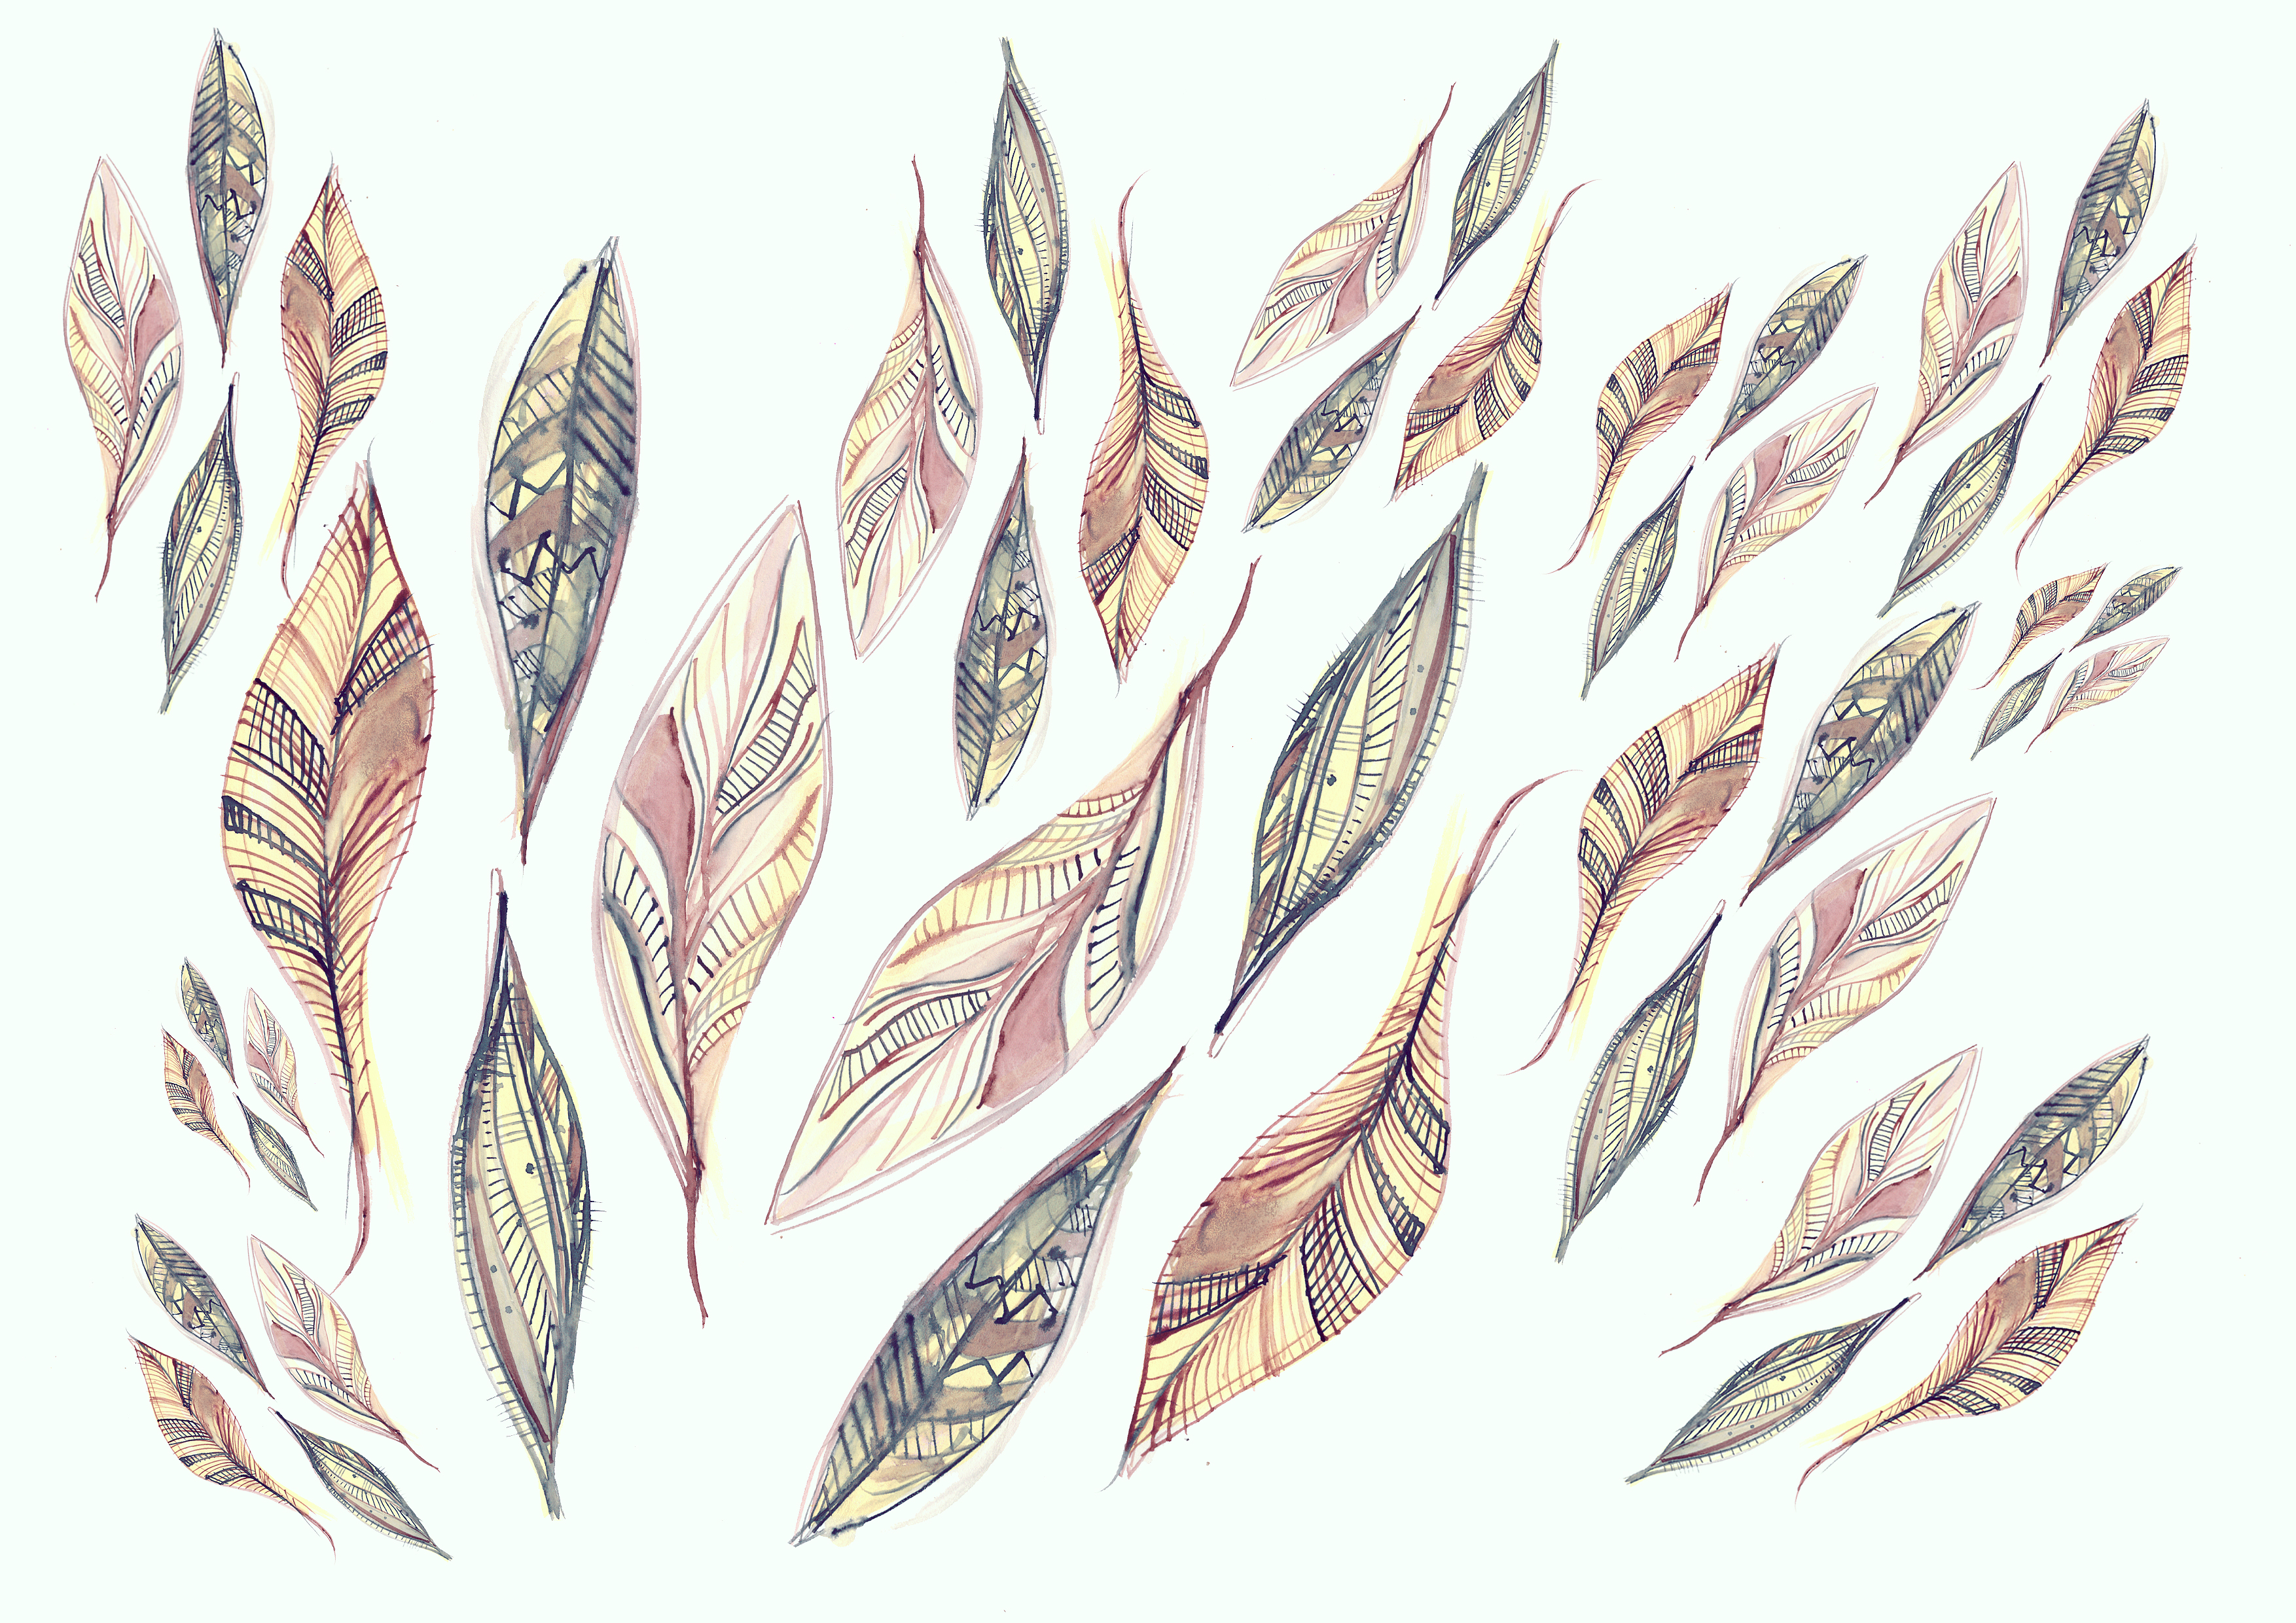 feathers drawing by vasare nar vasare nar art fashion